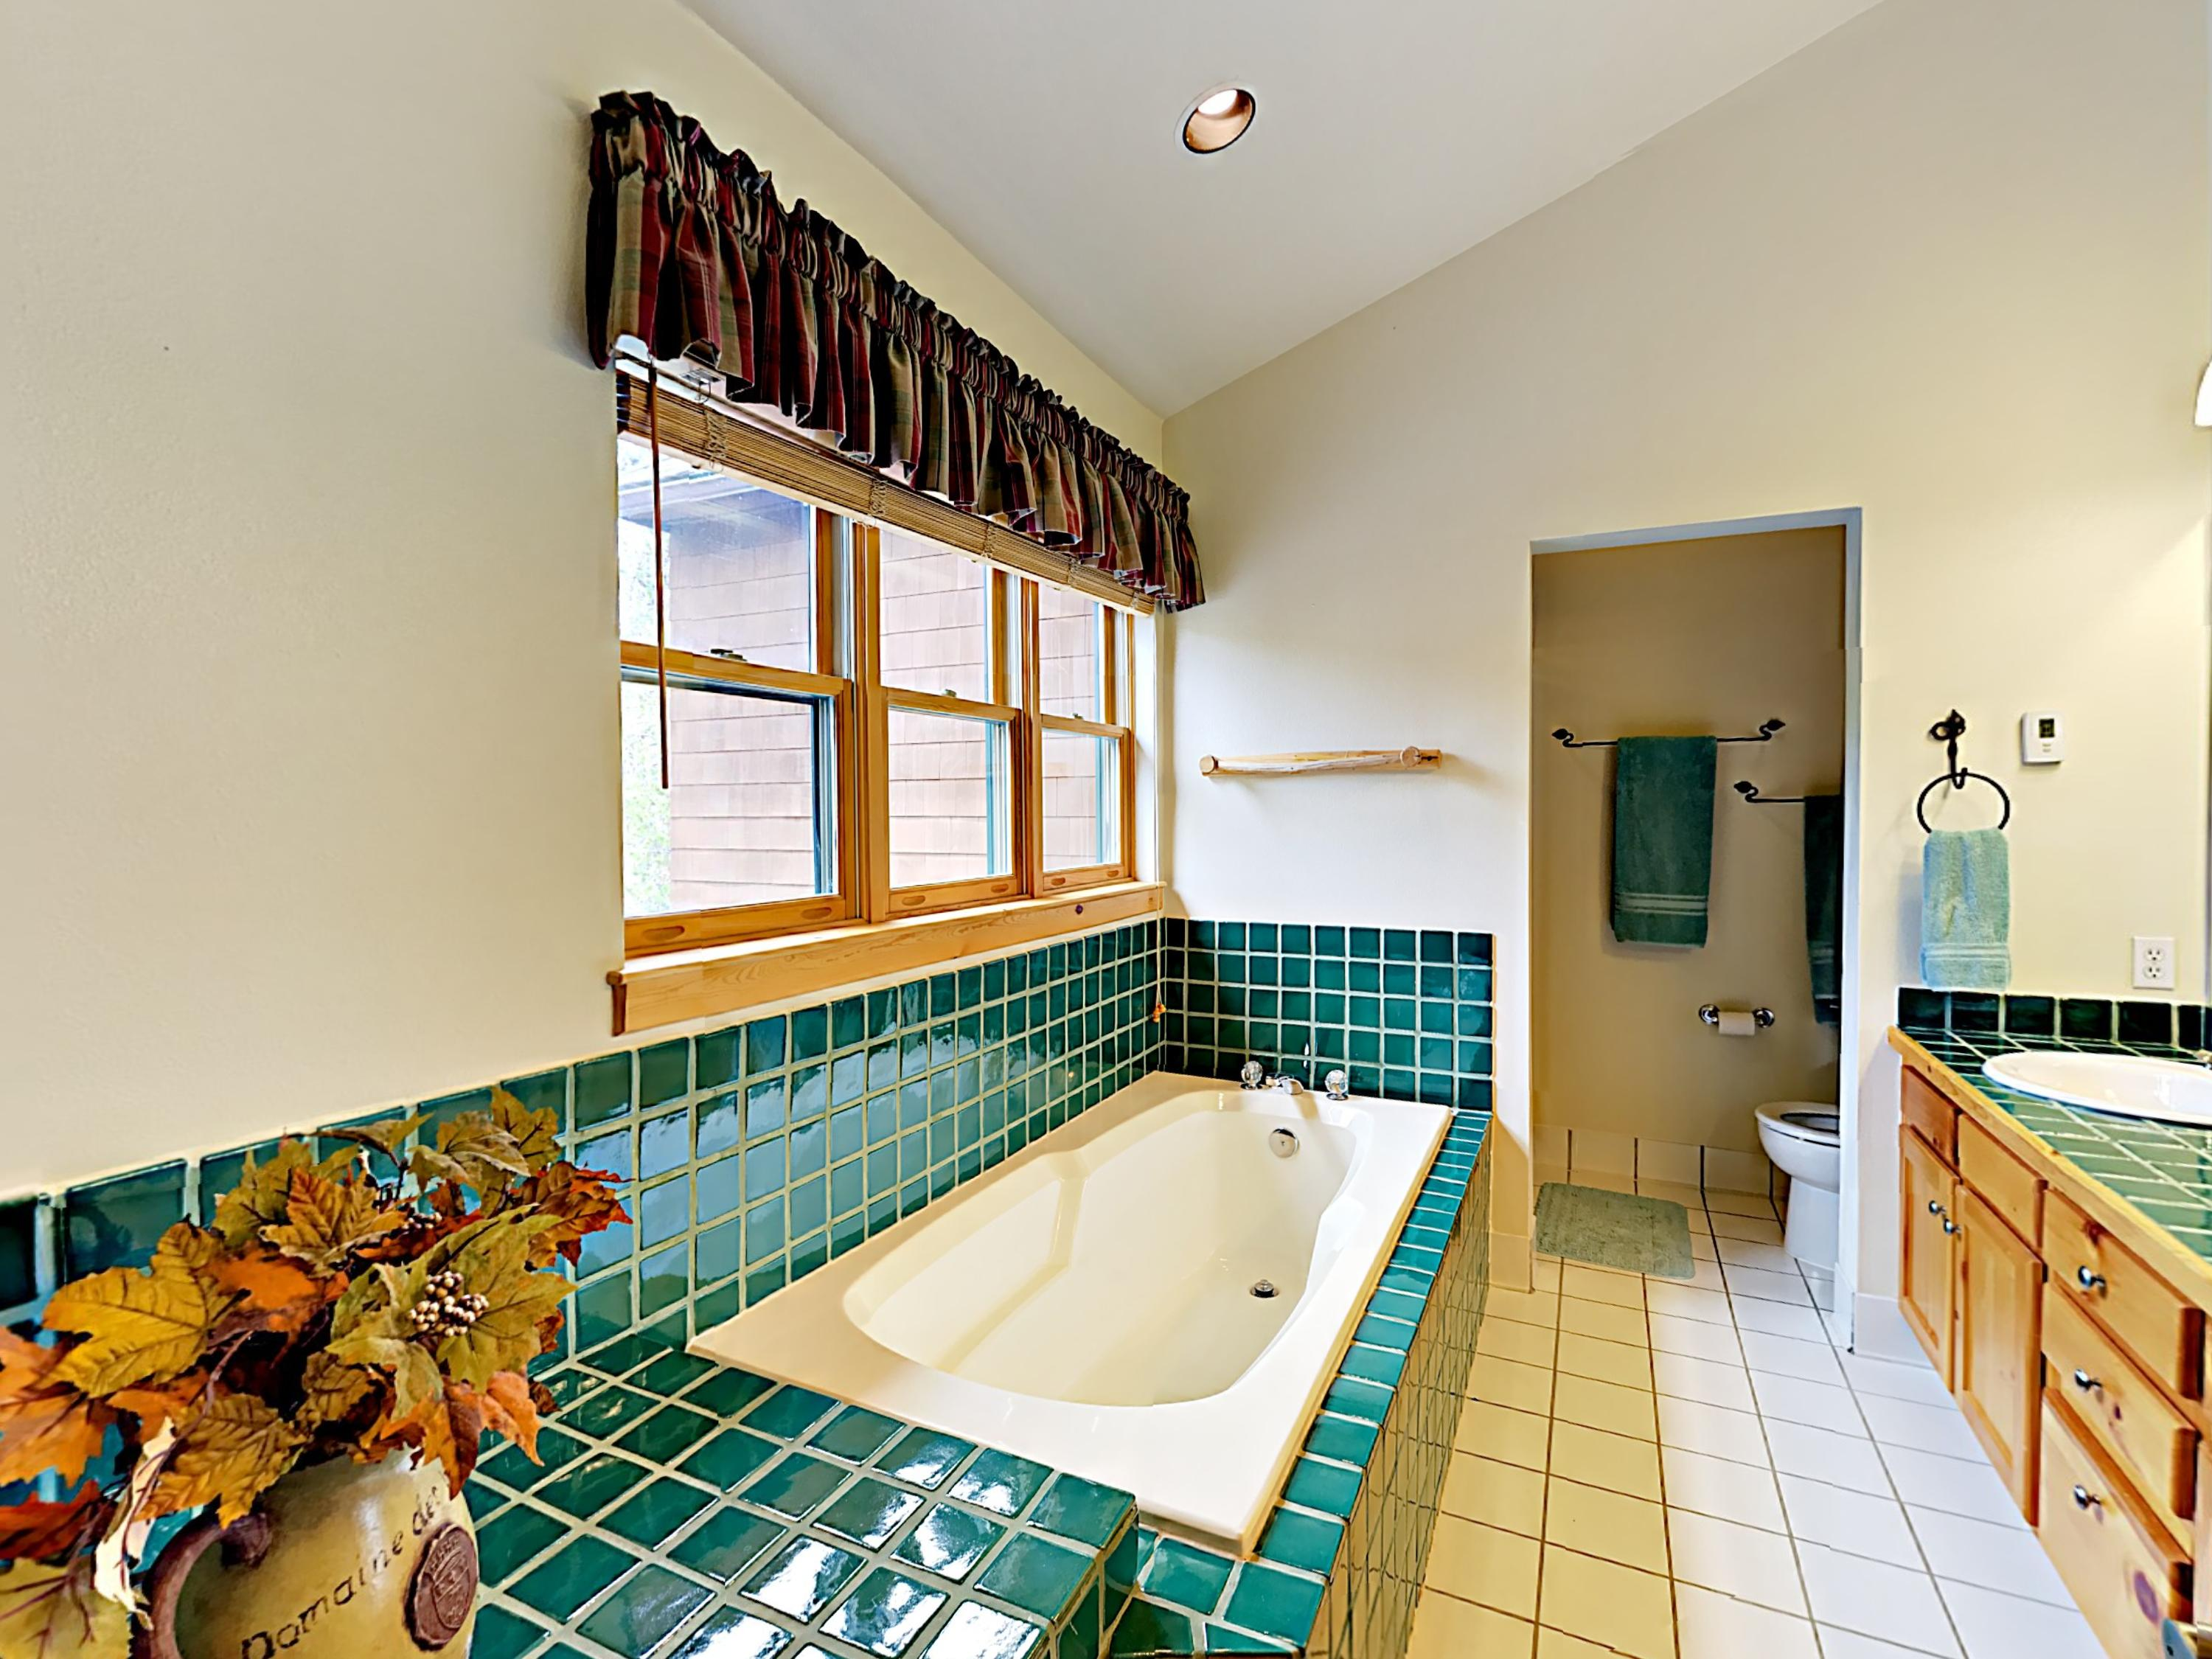 The en suite master has a sunken tub for prime relaxation.